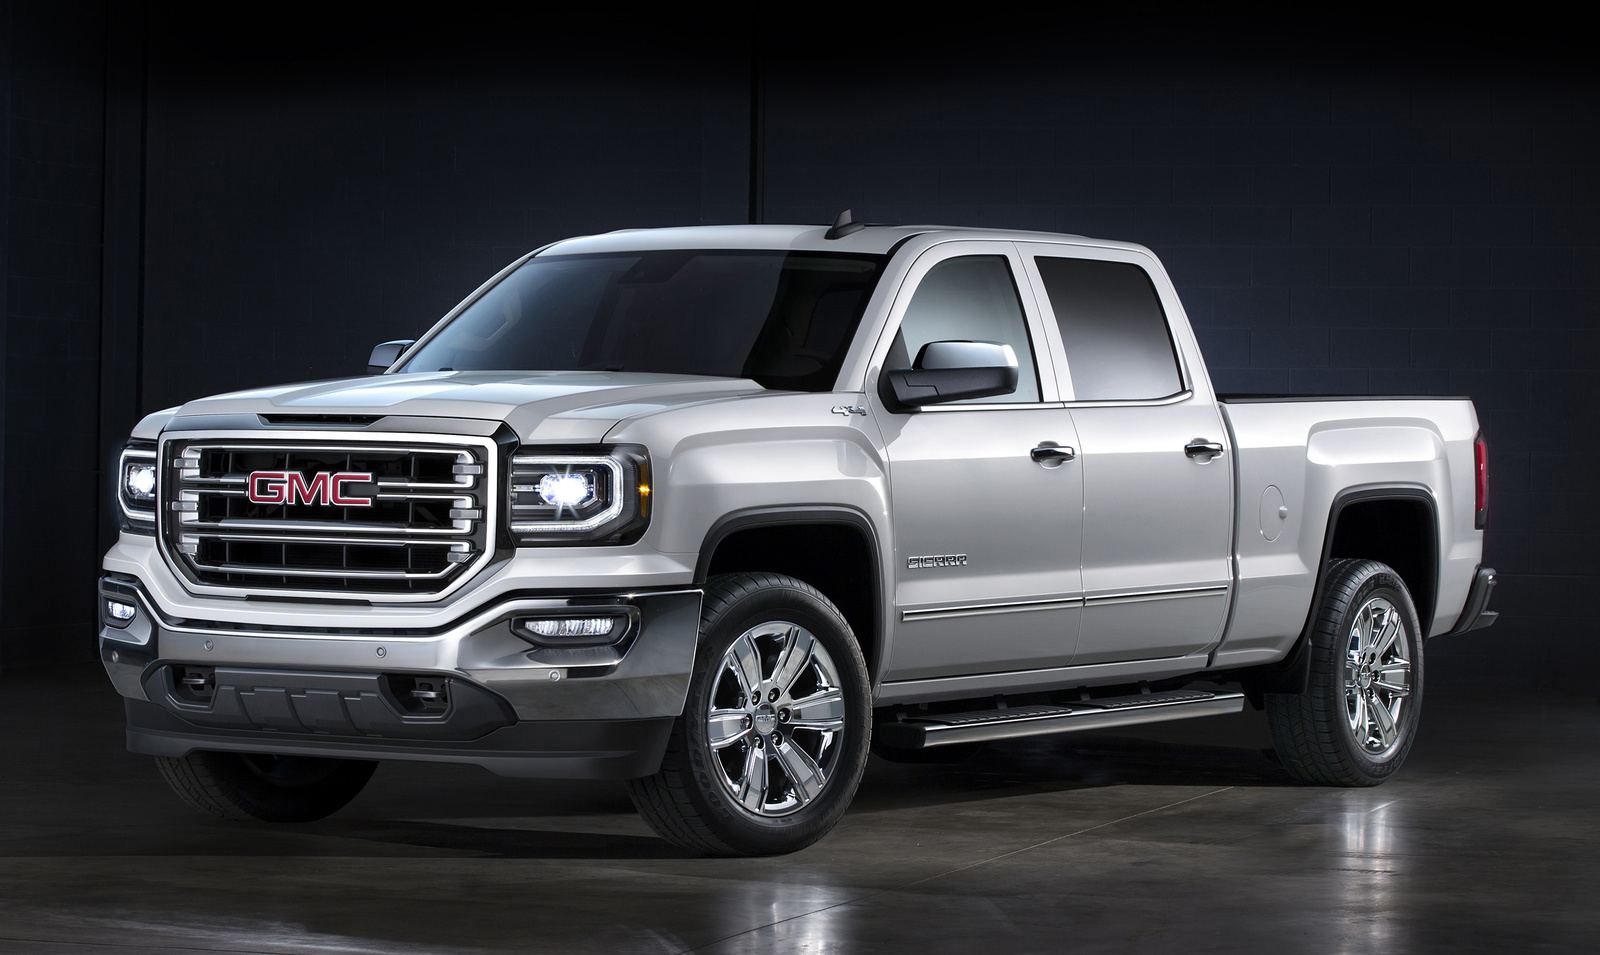 2016 GMC Sierra 1500 - Review - CarGurus